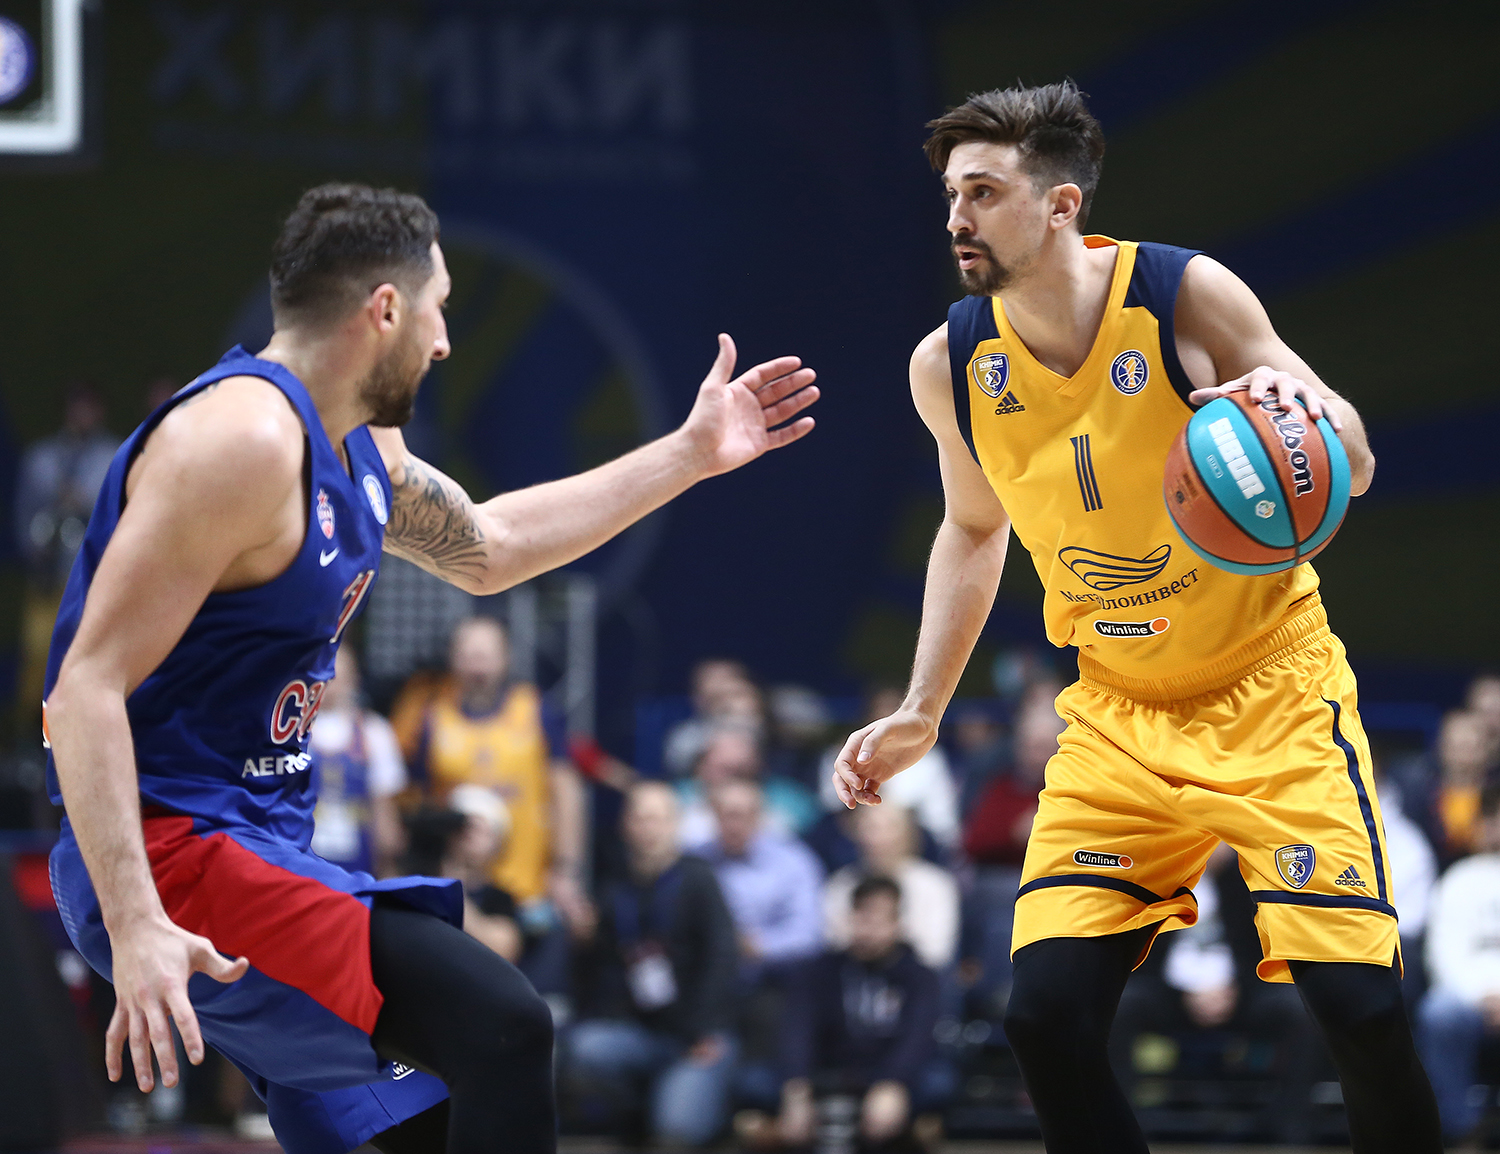 Khimki outplay CSKA at crowded Mytishchi